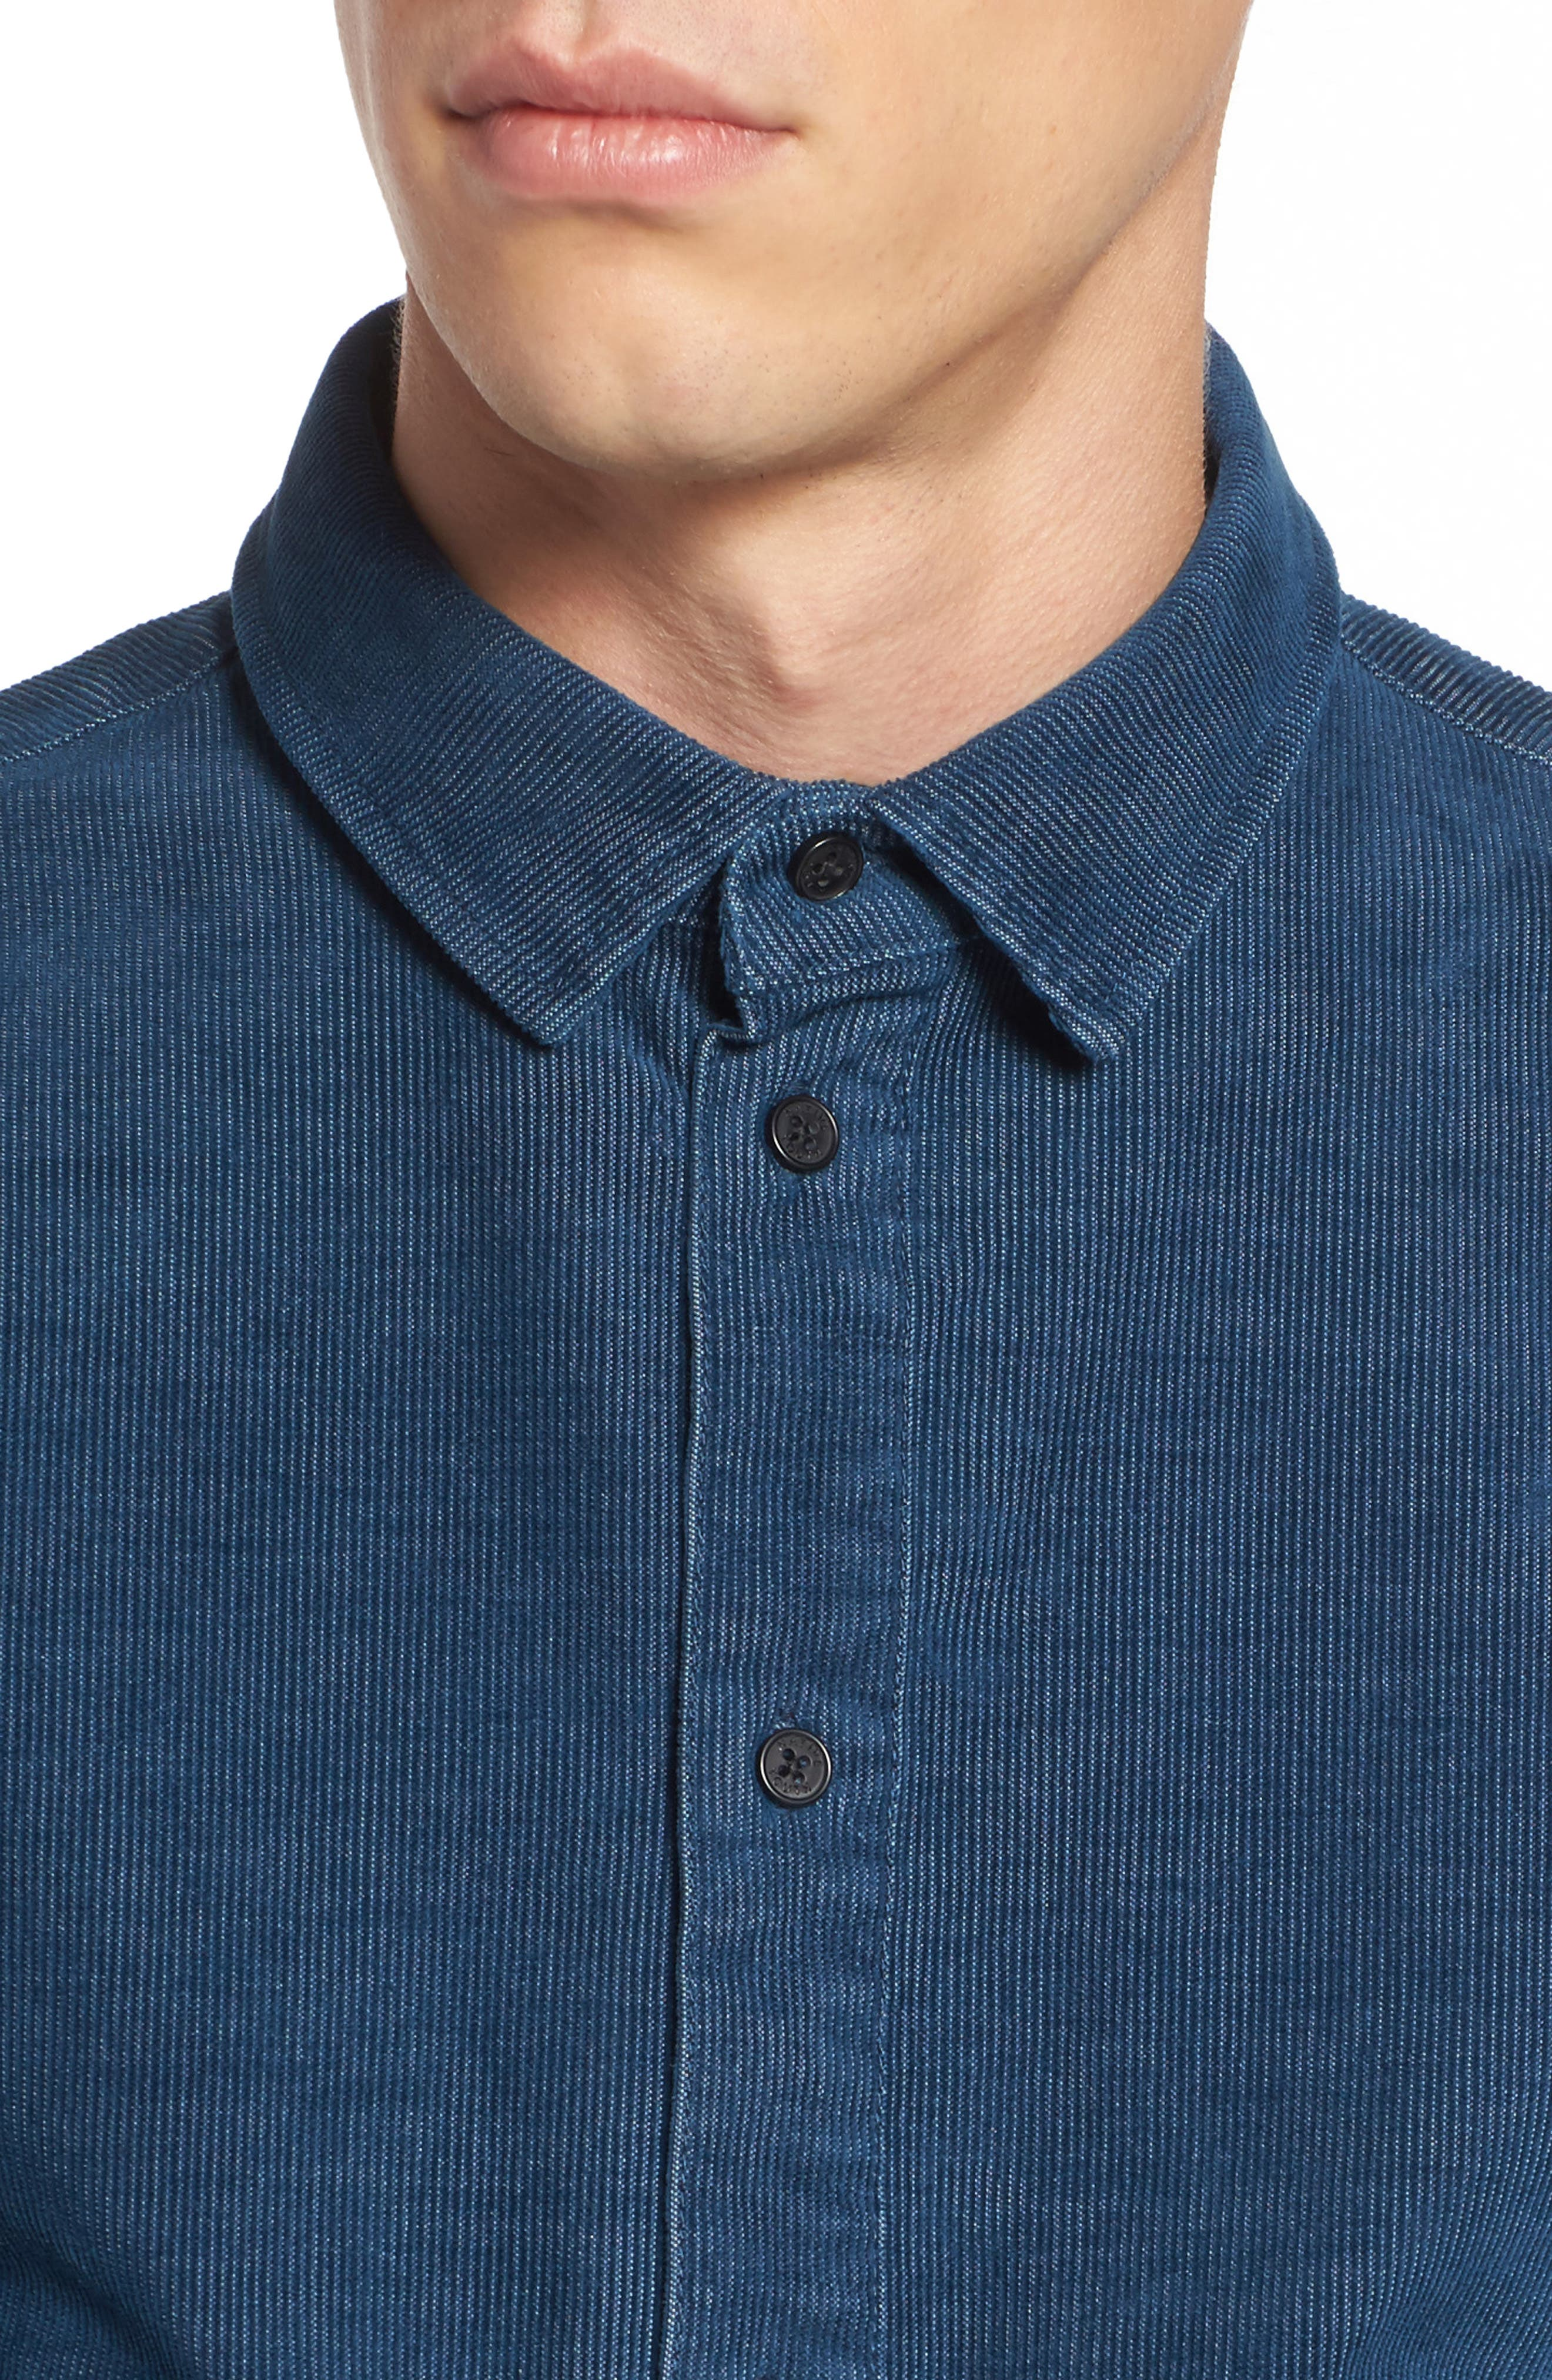 Cheriton Corduroy Shirt,                             Alternate thumbnail 4, color,                             Blue